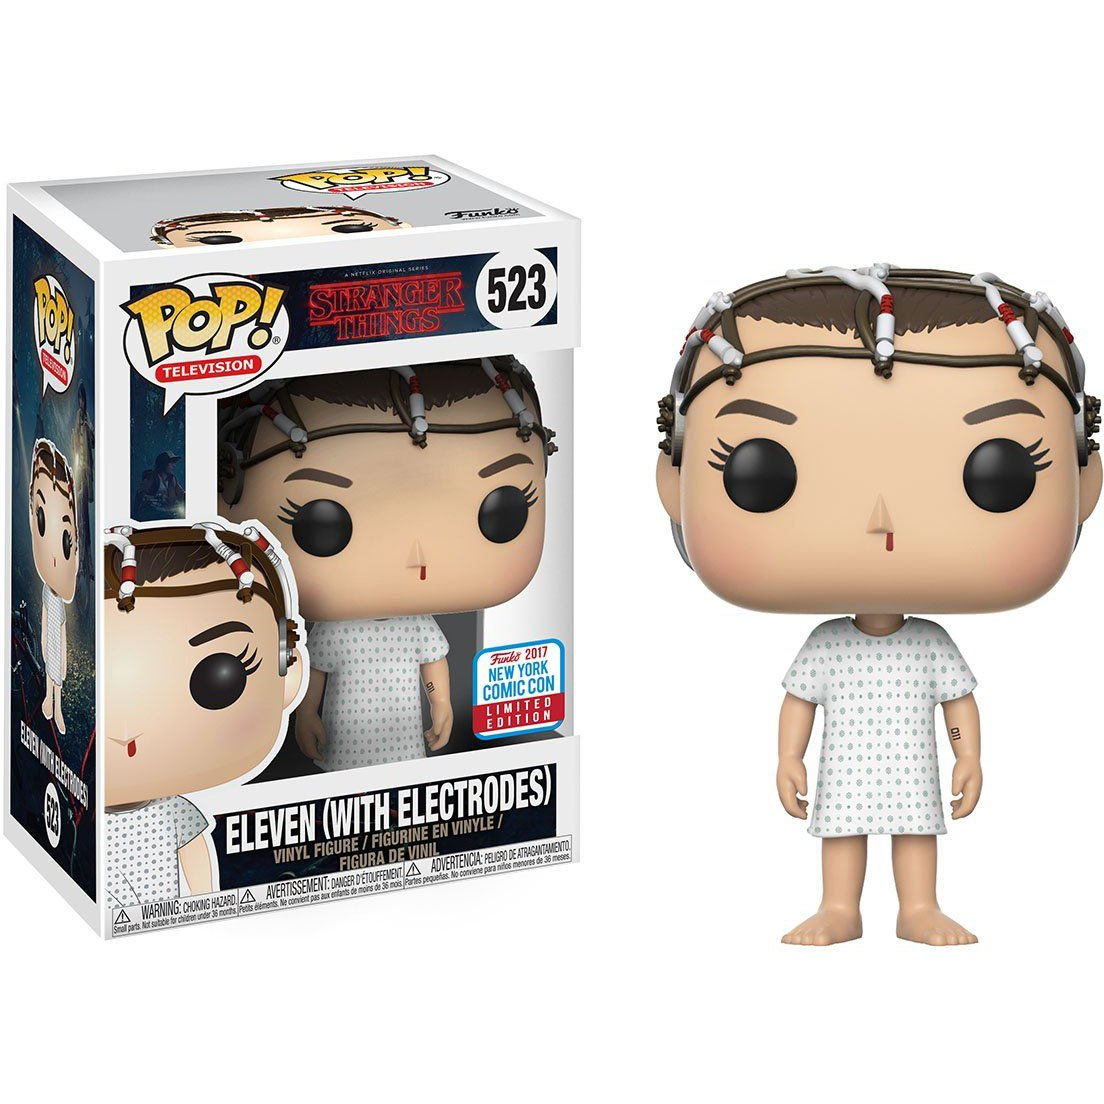 Eleven with Electrodes Funko Pop! Television Stranger Things Fall Convention 2017 Exclusive